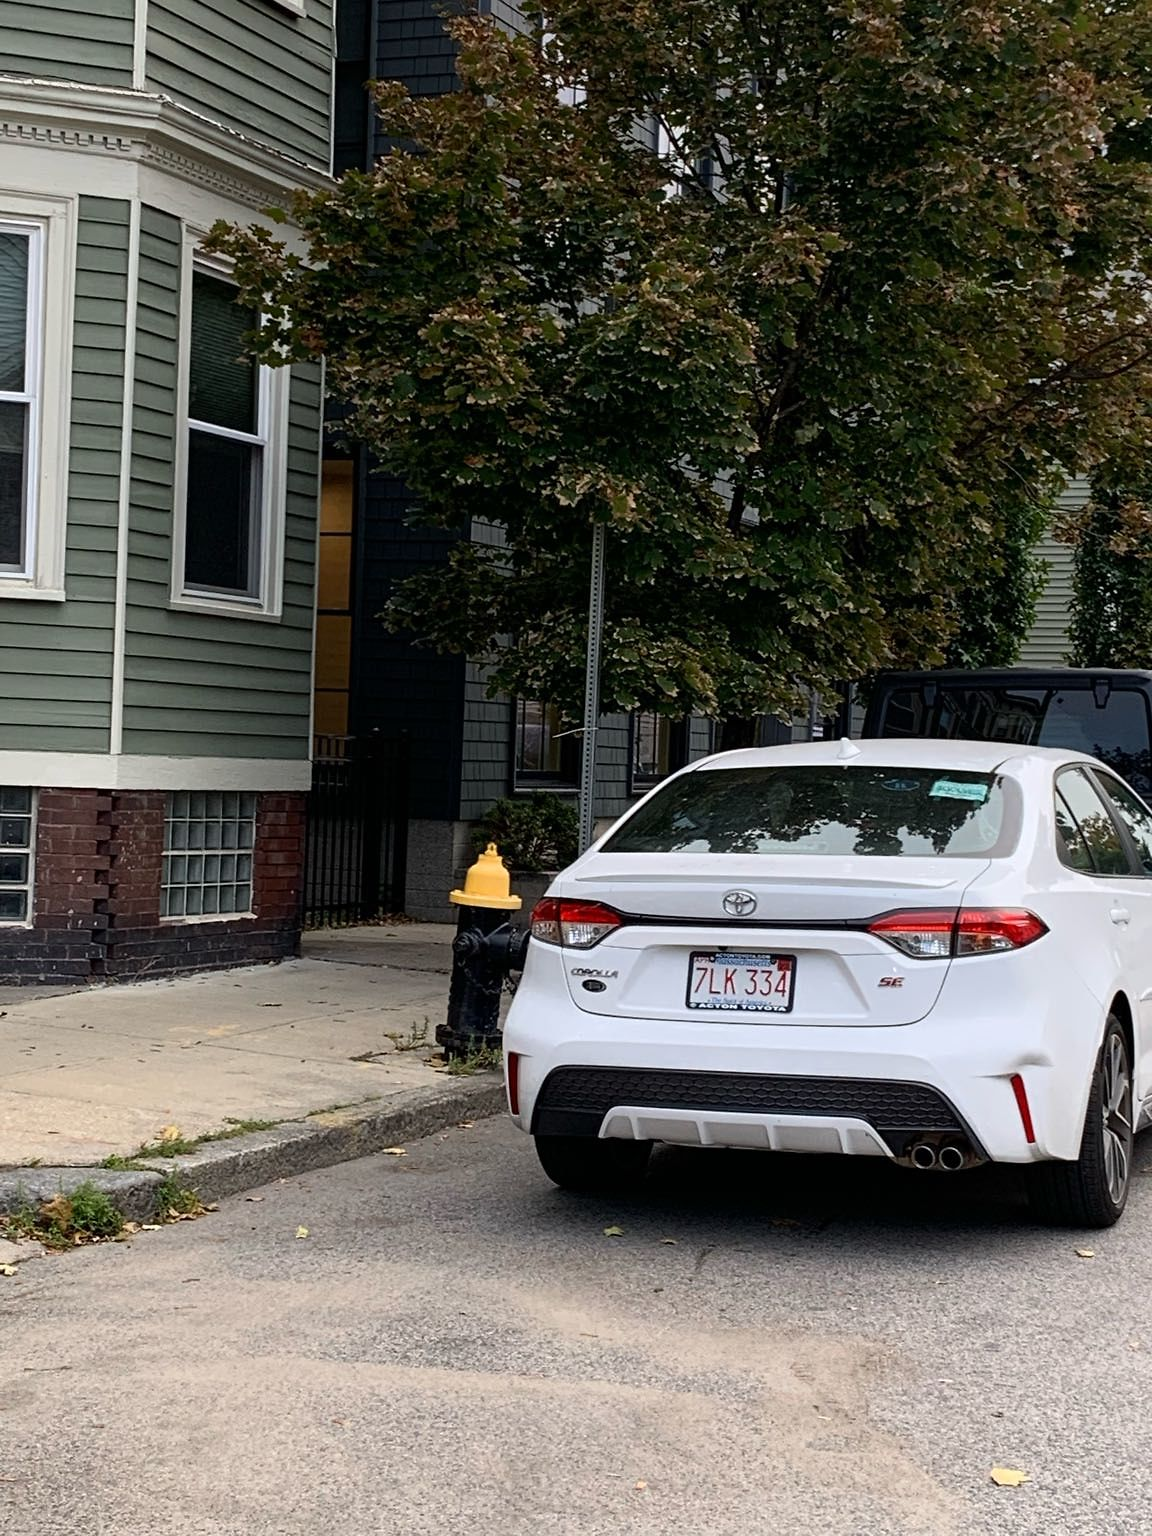 Just a heads up - this car is still here in front of the hydrant - that's 5 out of 6 days. No repercussions means no one cares. Tow this car.